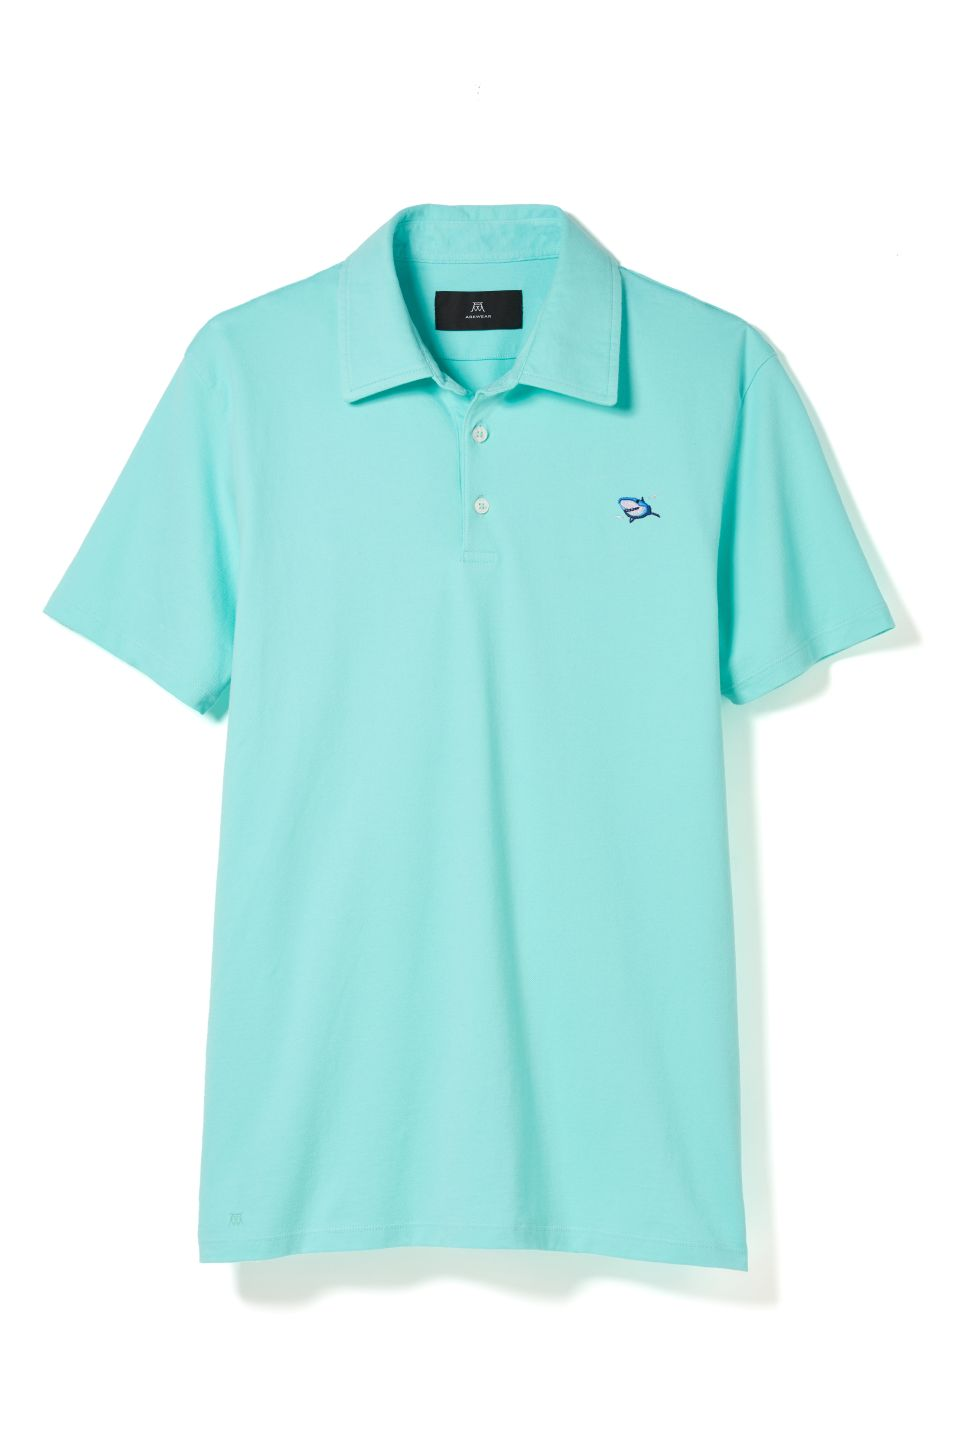 ARKWEAR's Great White Polo Shirt